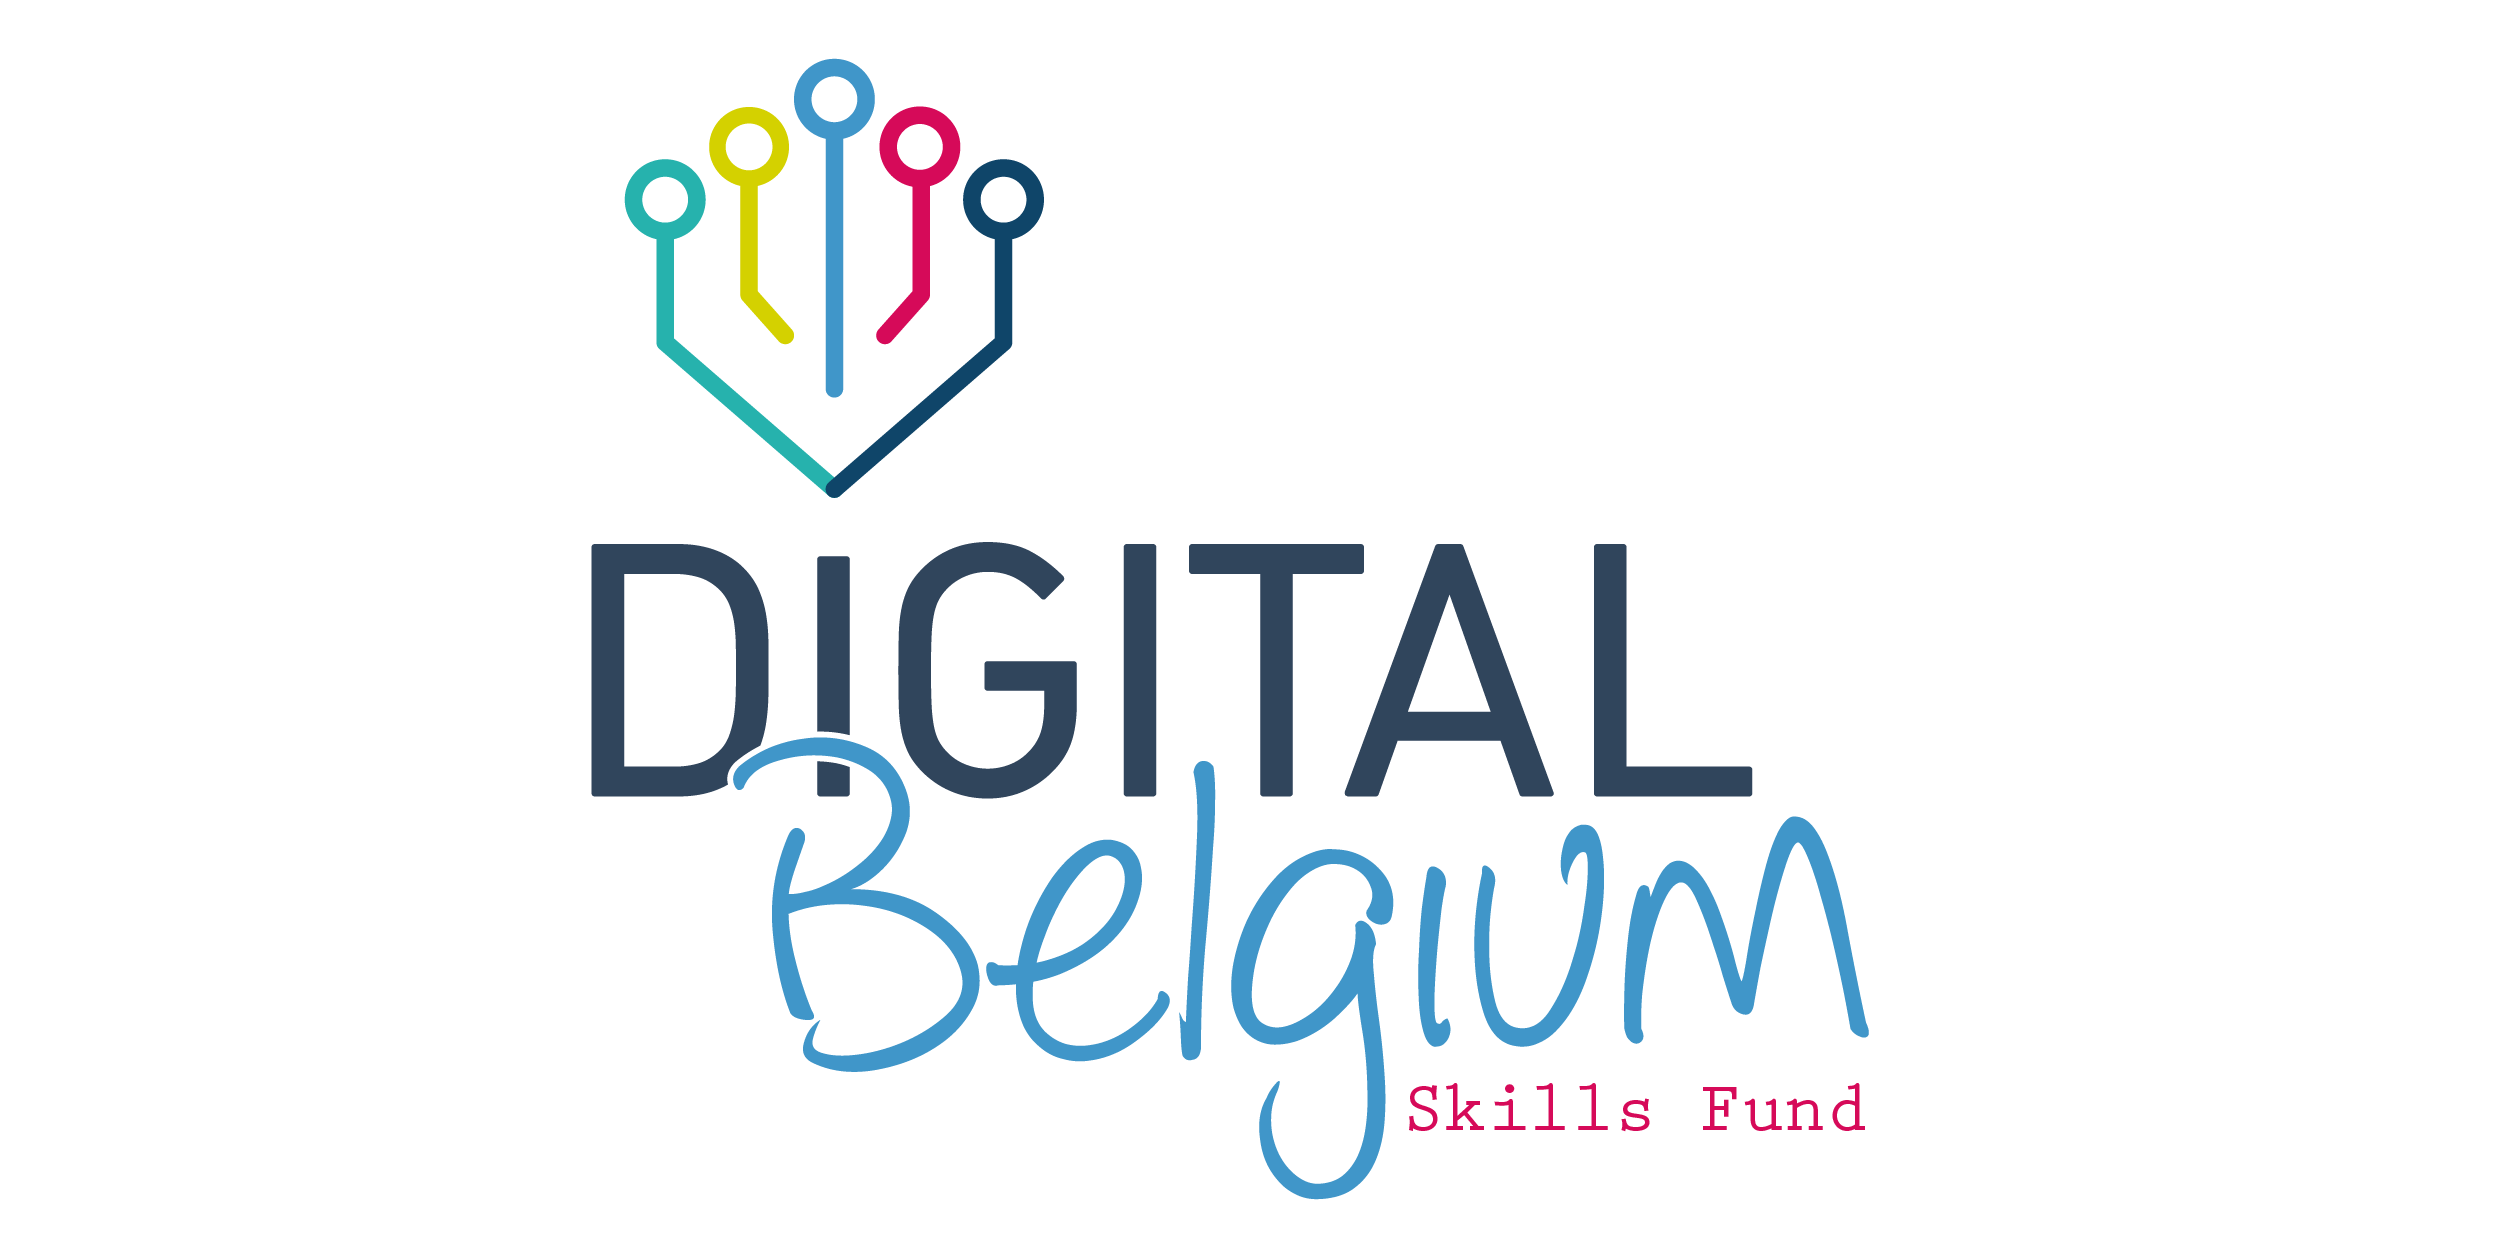 Digital Belgium Skills Fund